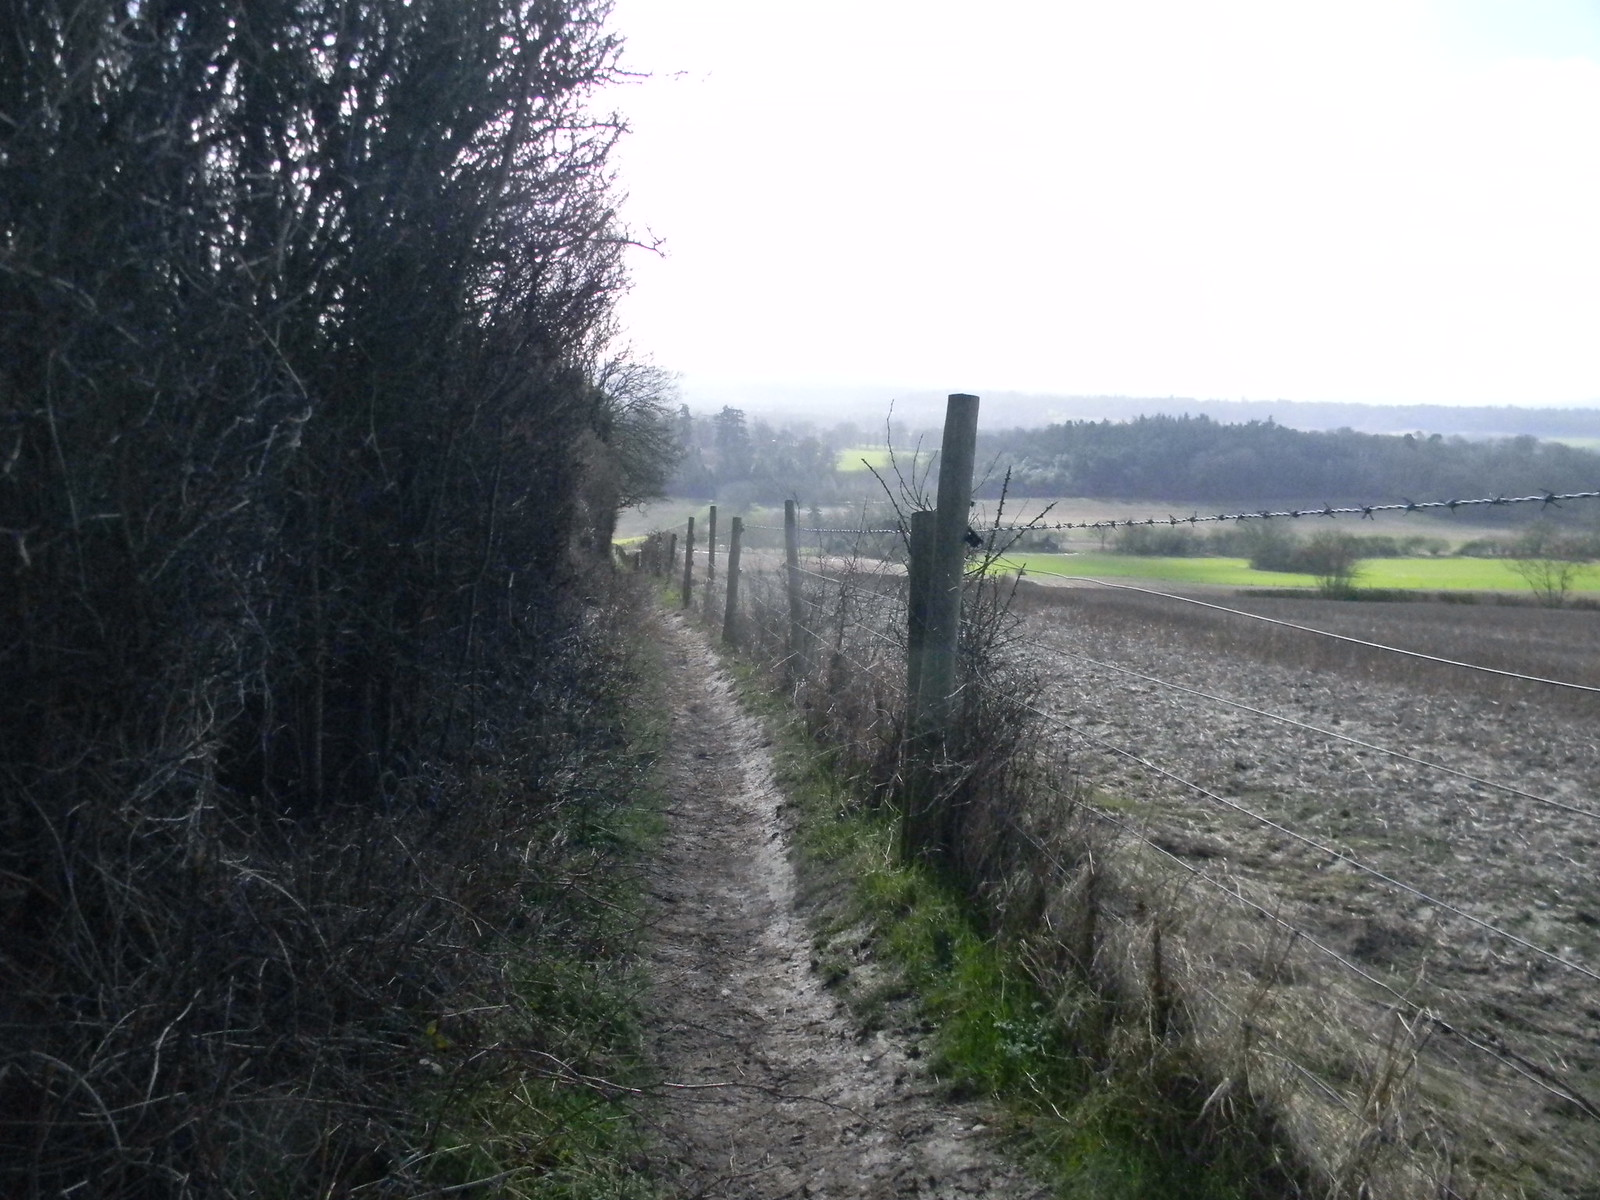 Hogsback start - descent from ridge Guildford to Farnham